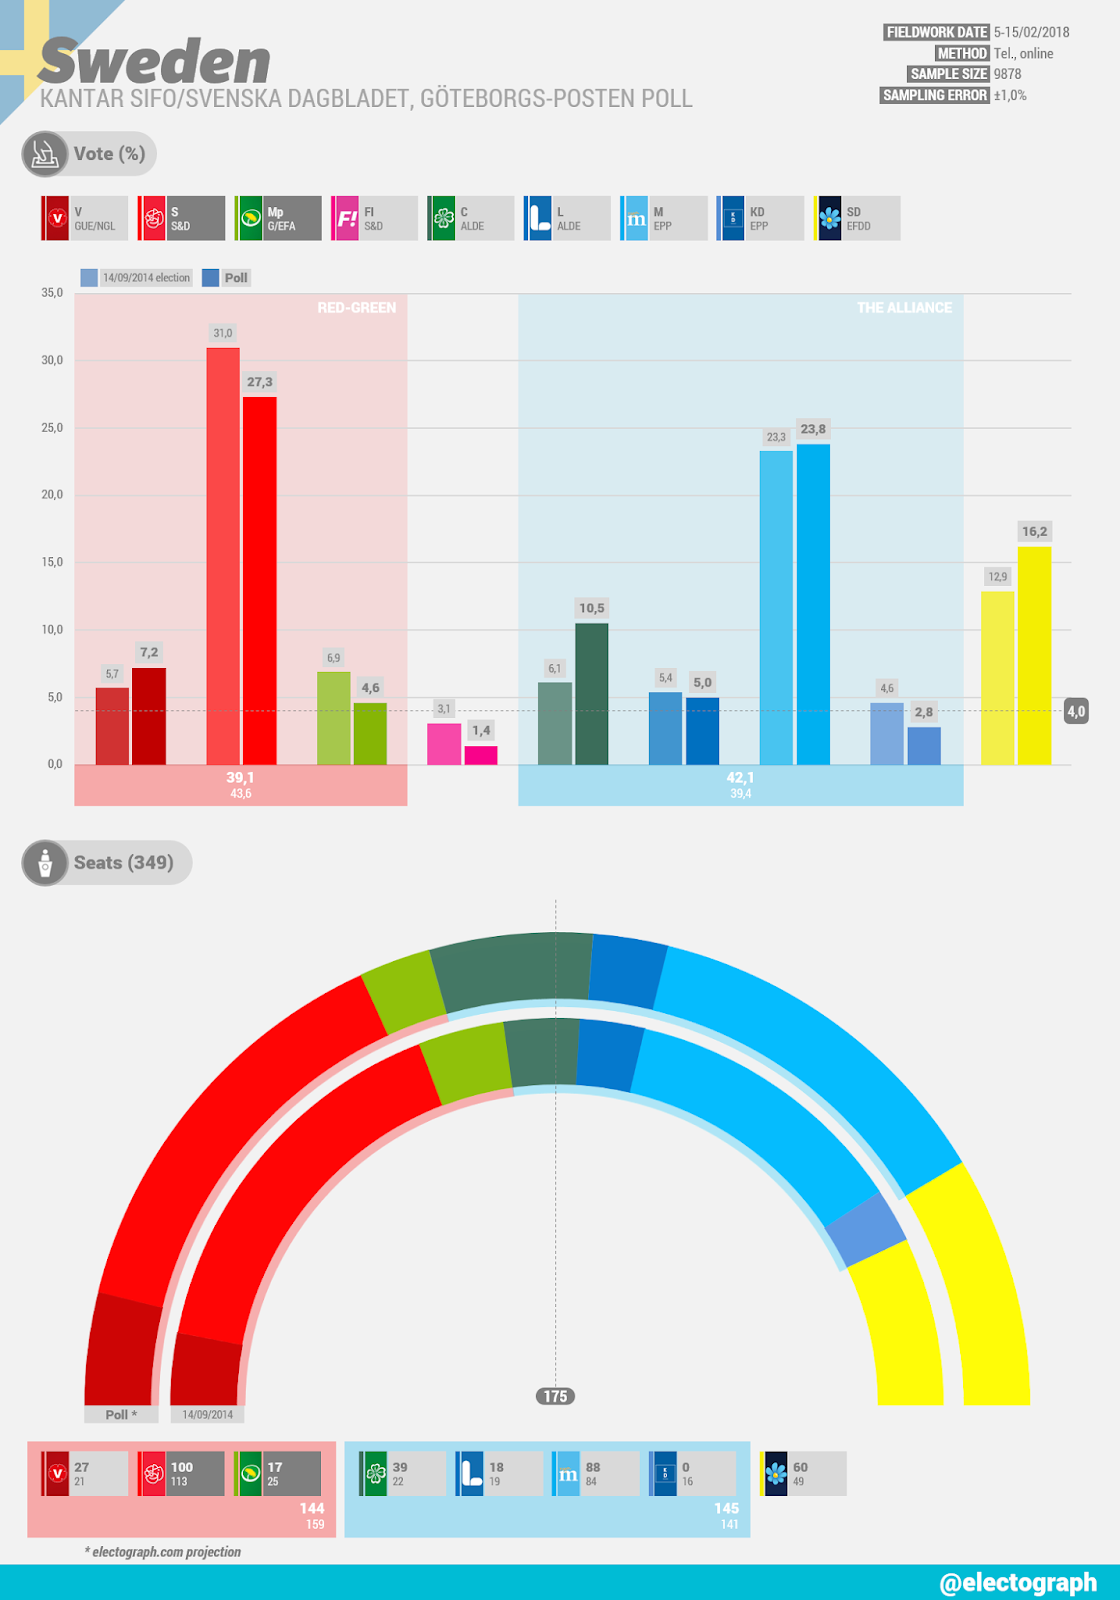 SWEDEN Kantar SIFO poll chart for Svenska Dagbladet and Göteborgs-Posten, February 2018